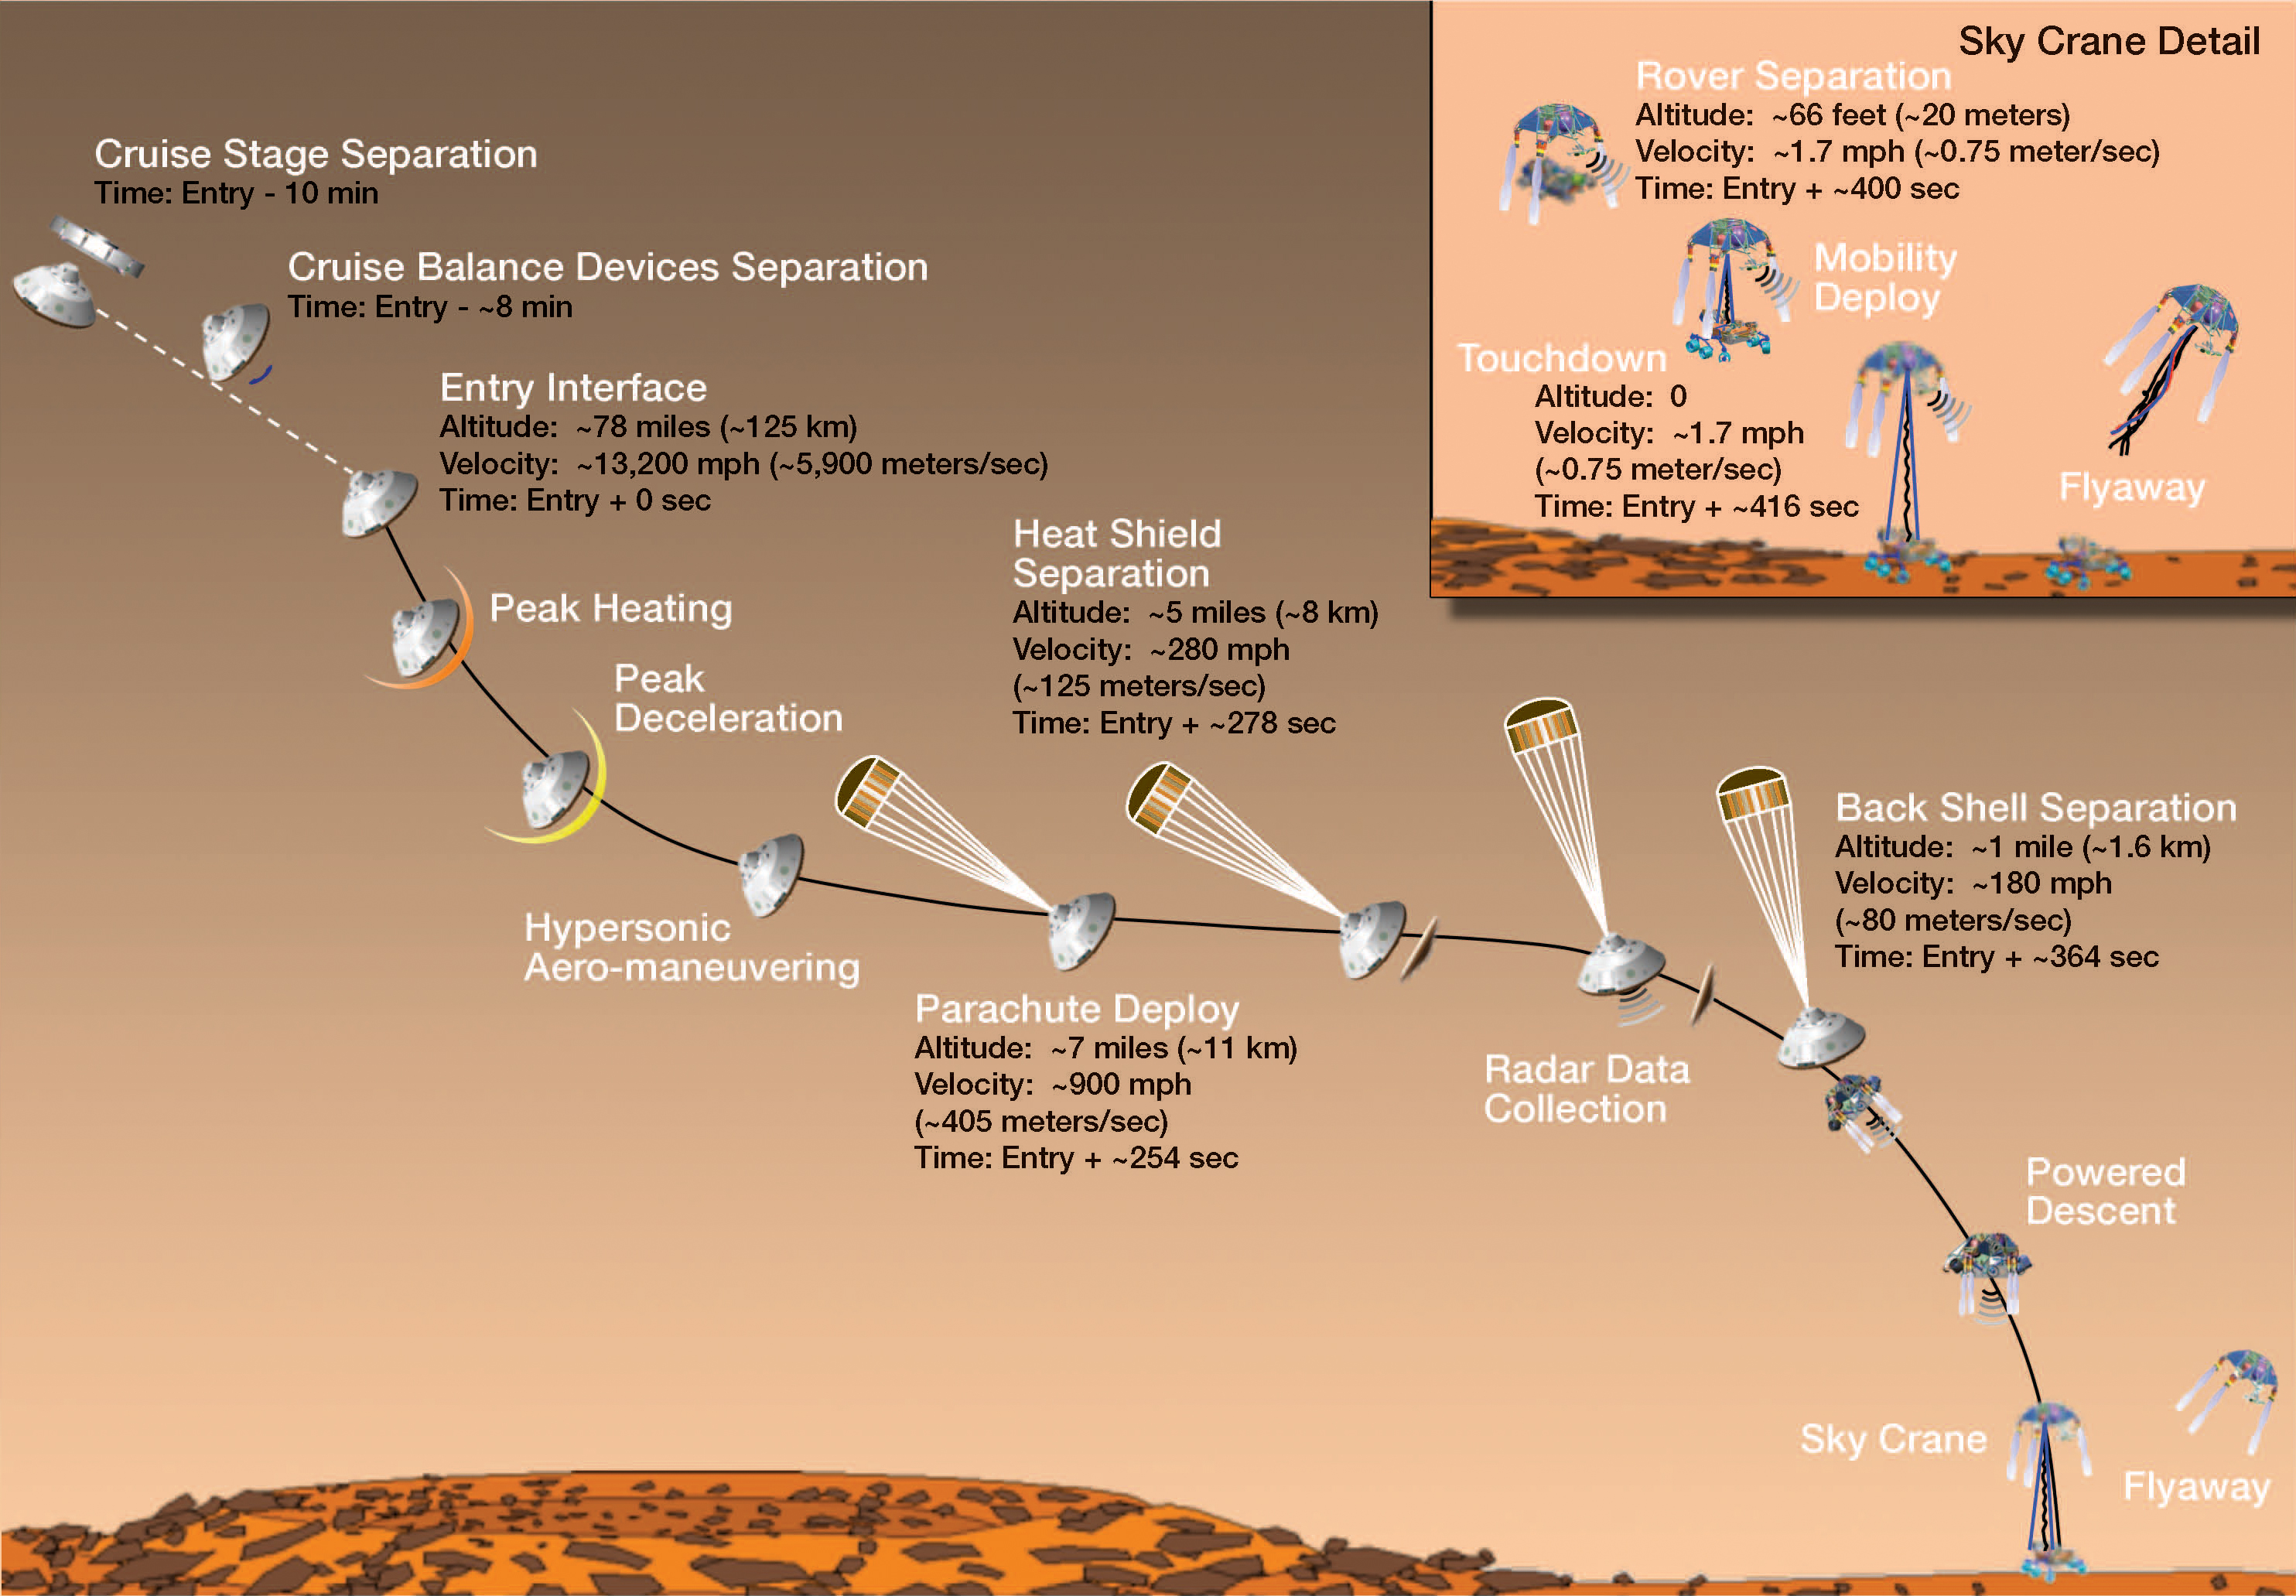 Mars Science Lab entry, desent and landing